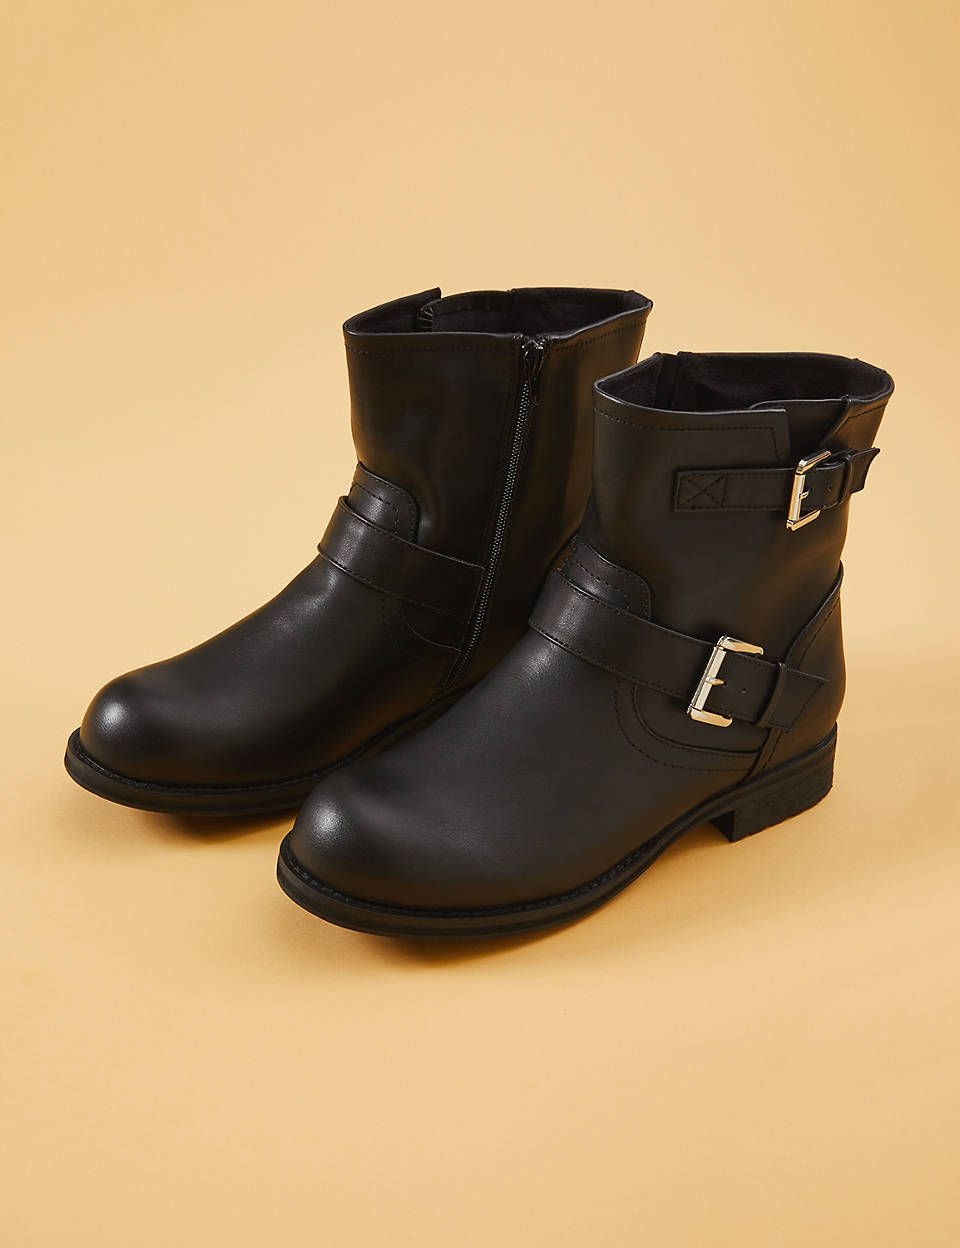 9c9ffa75f3 Faux Leather Moto Boot With Buckles